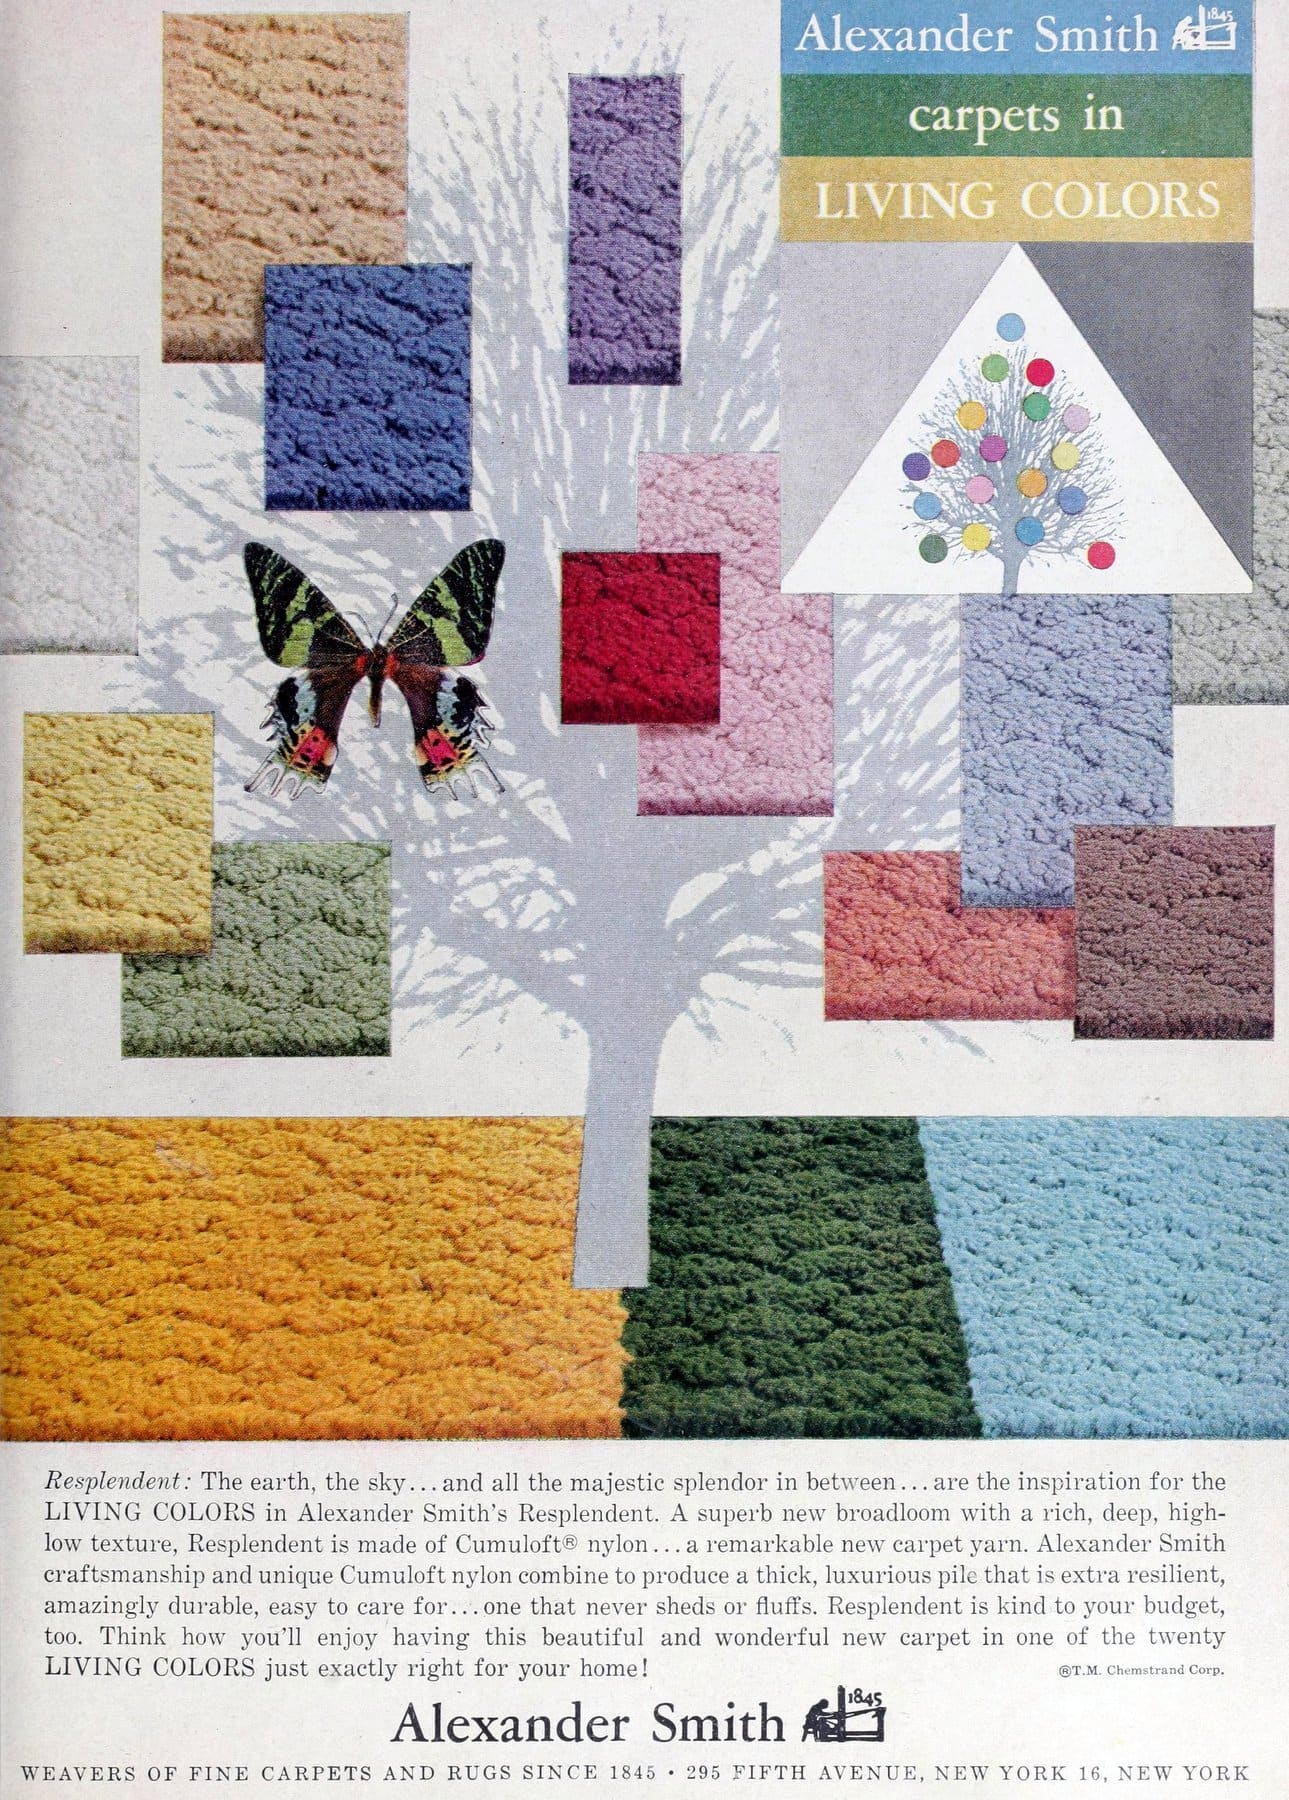 Vintage Alexander Smith sculpted and textured wall-to-wall carpeting (1960)